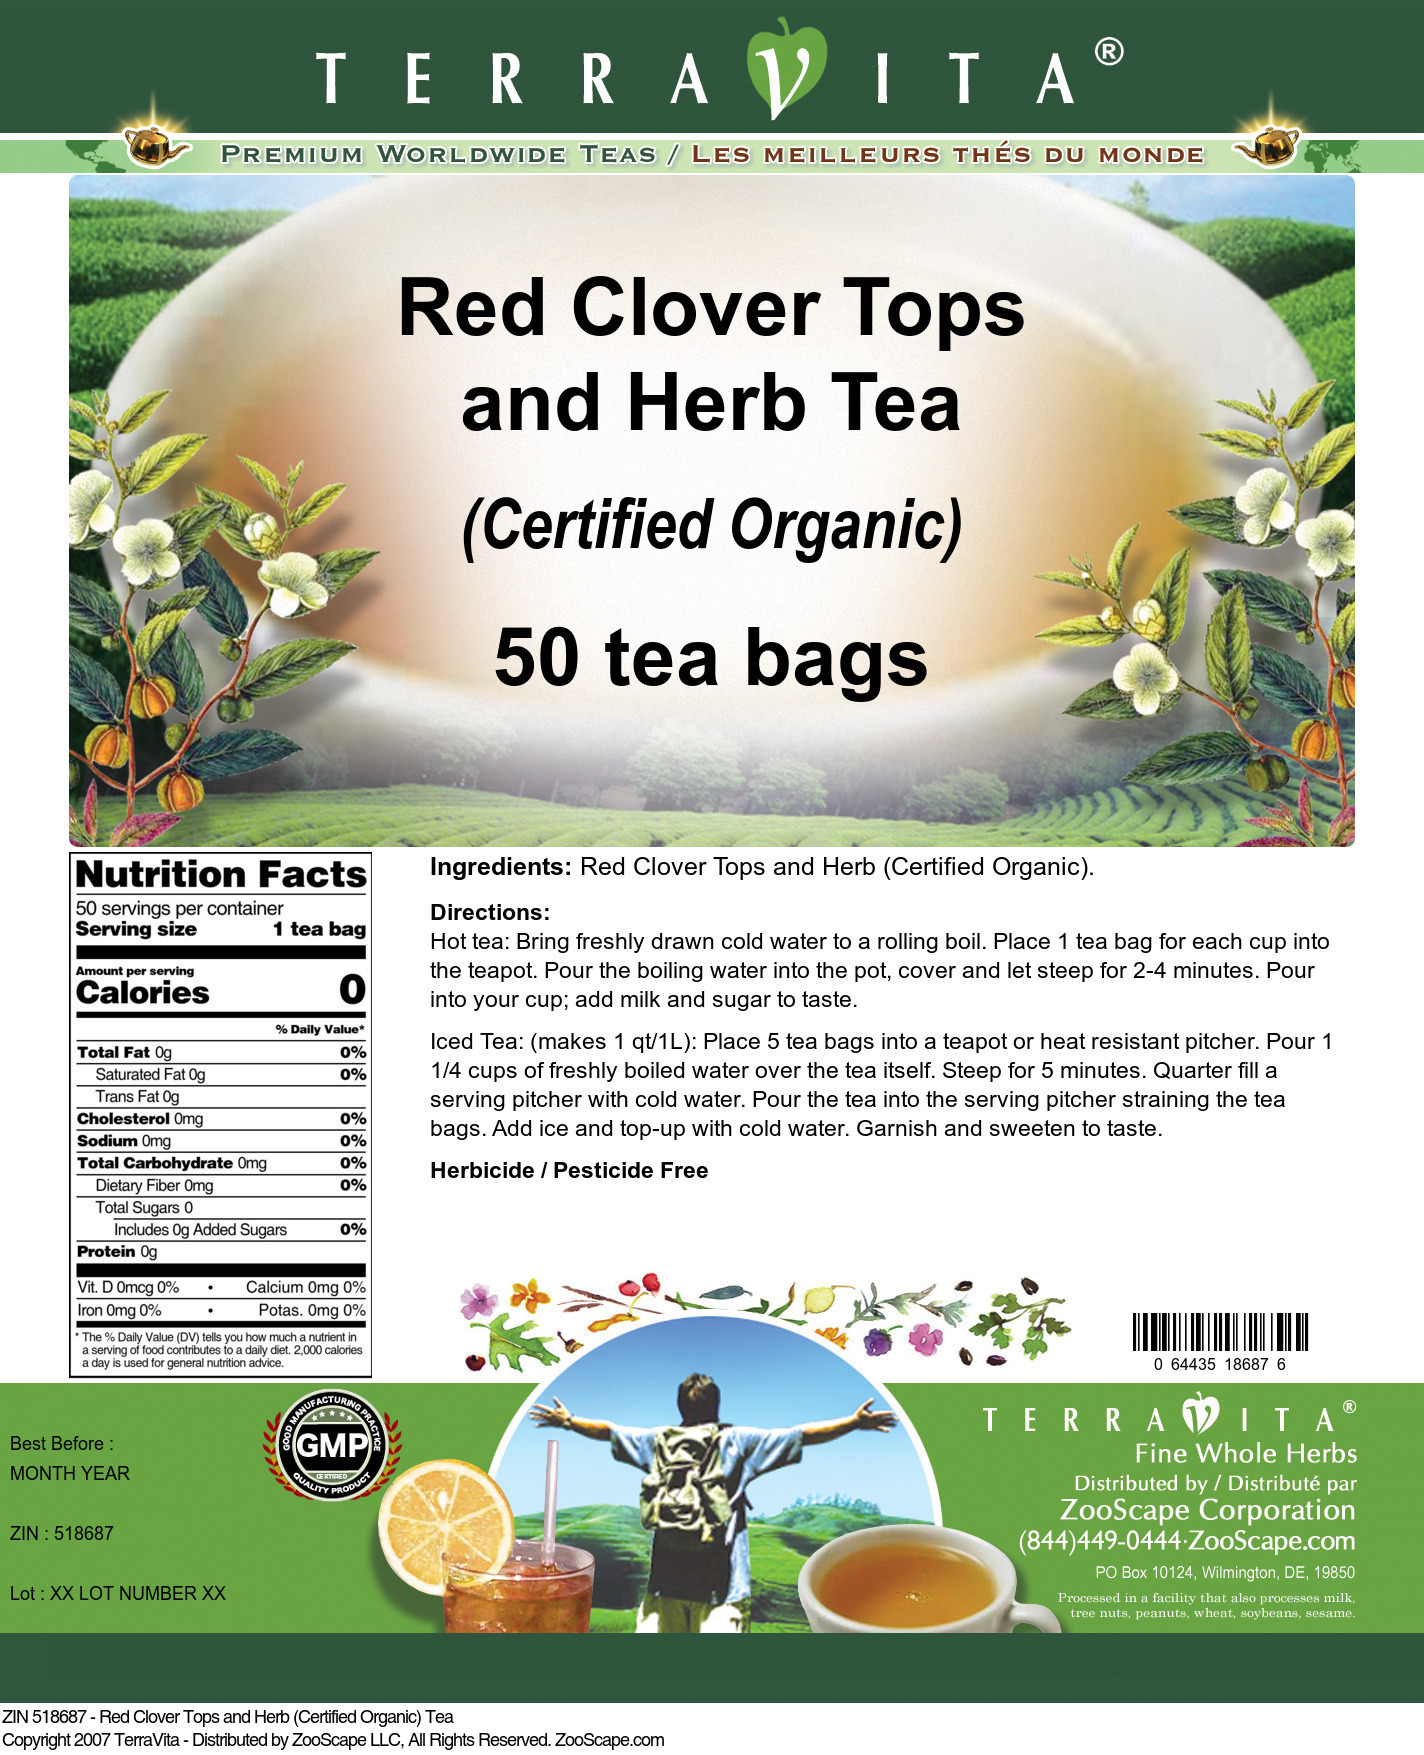 Red Clover Tops and Herb (Certified Organic) Tea